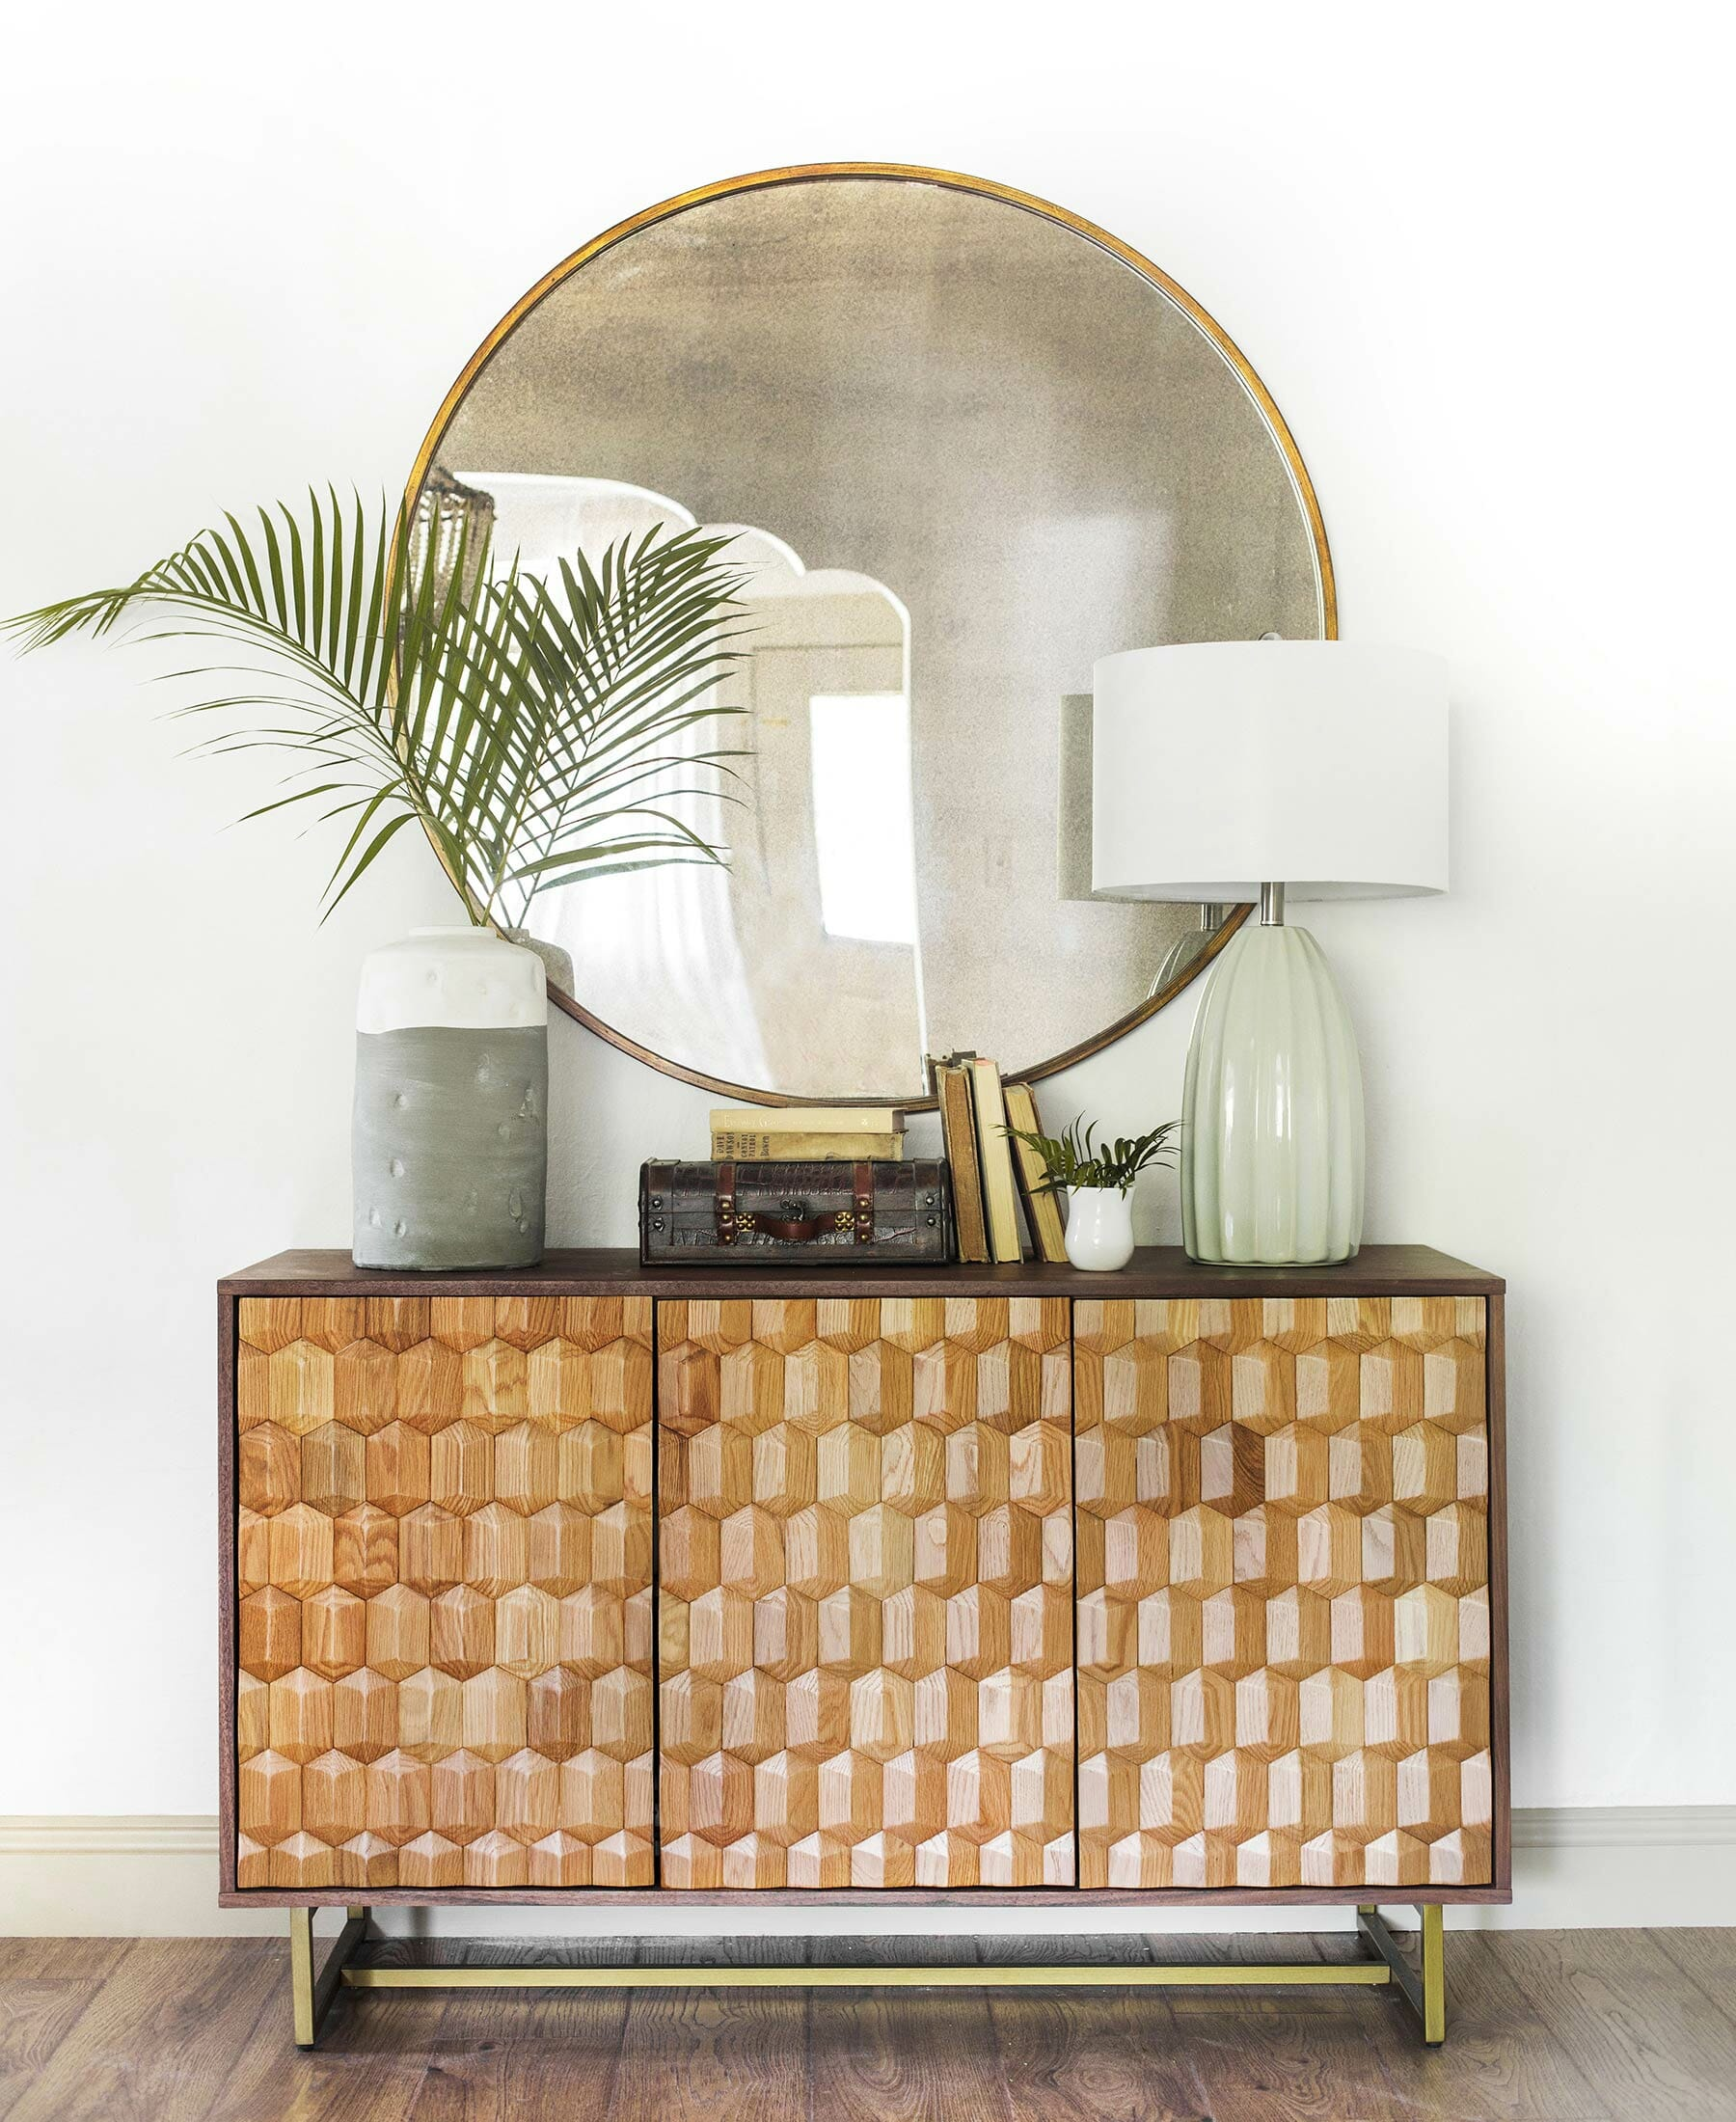 Living Room Storage Ideas The Sideboard Articulate